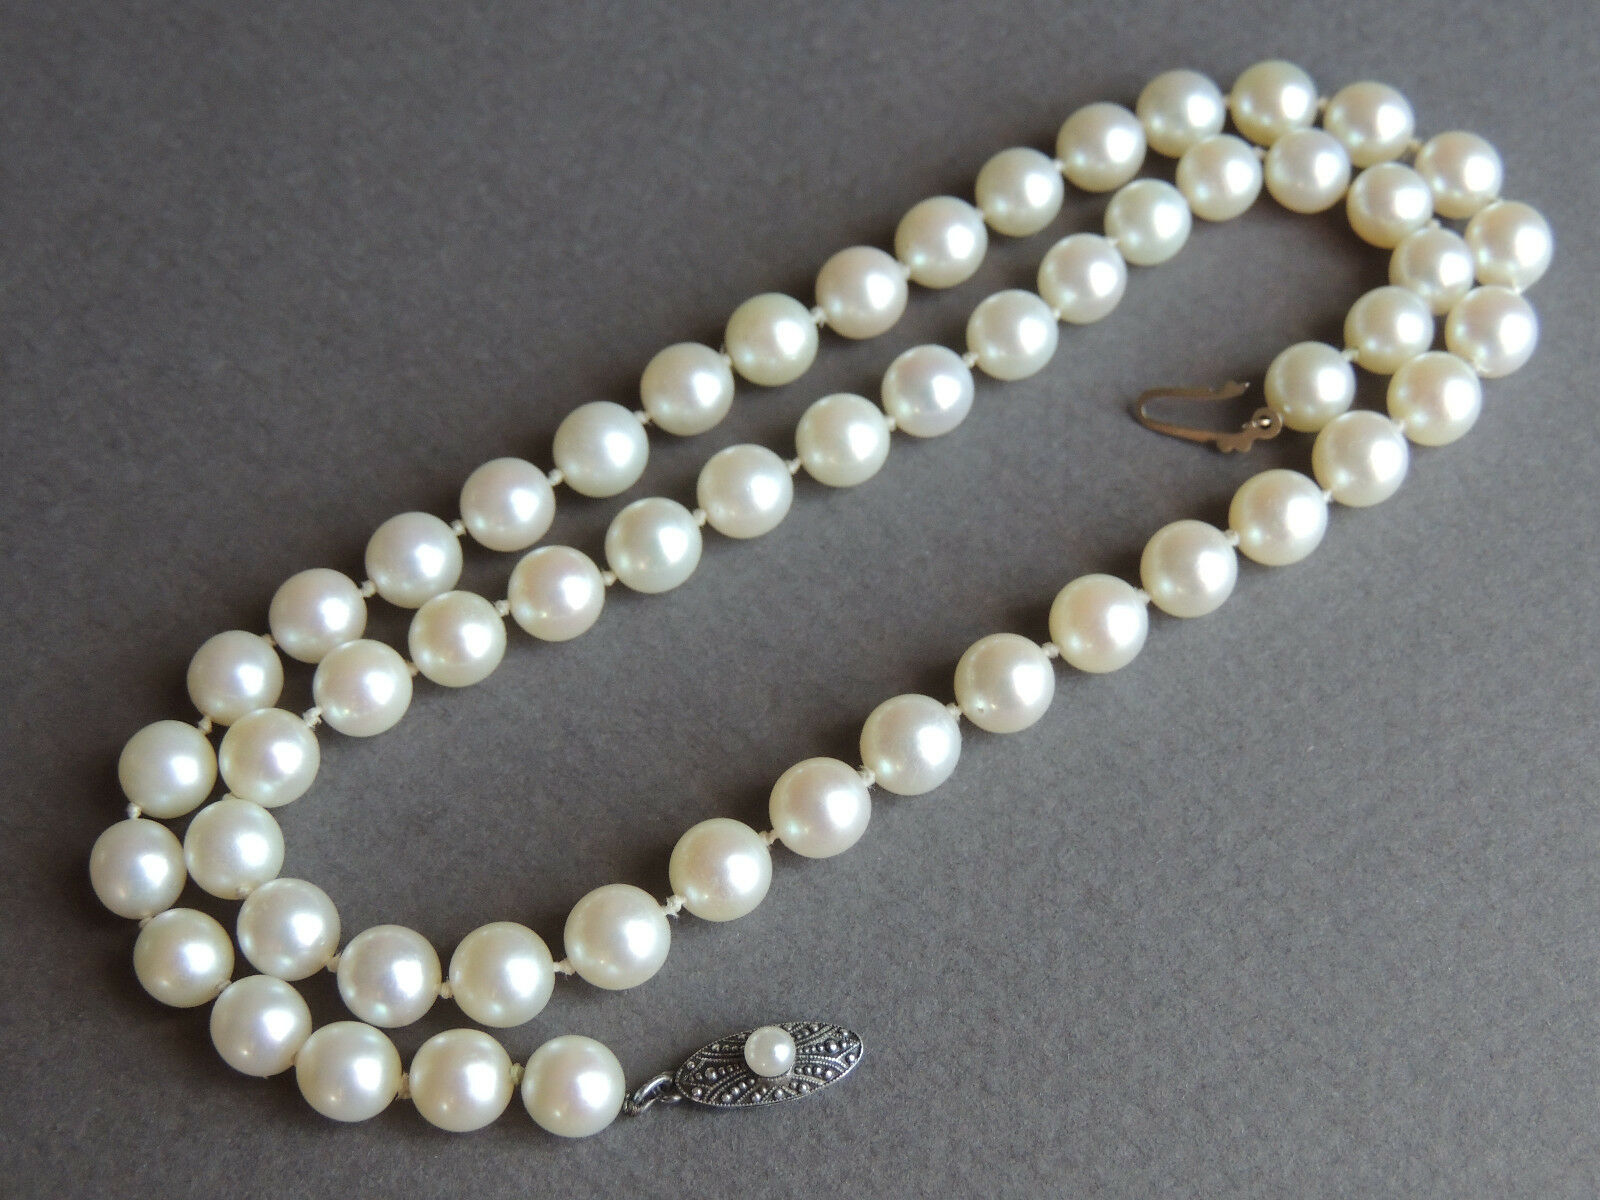 america catalogue motion hero collections mikimoto pearls in